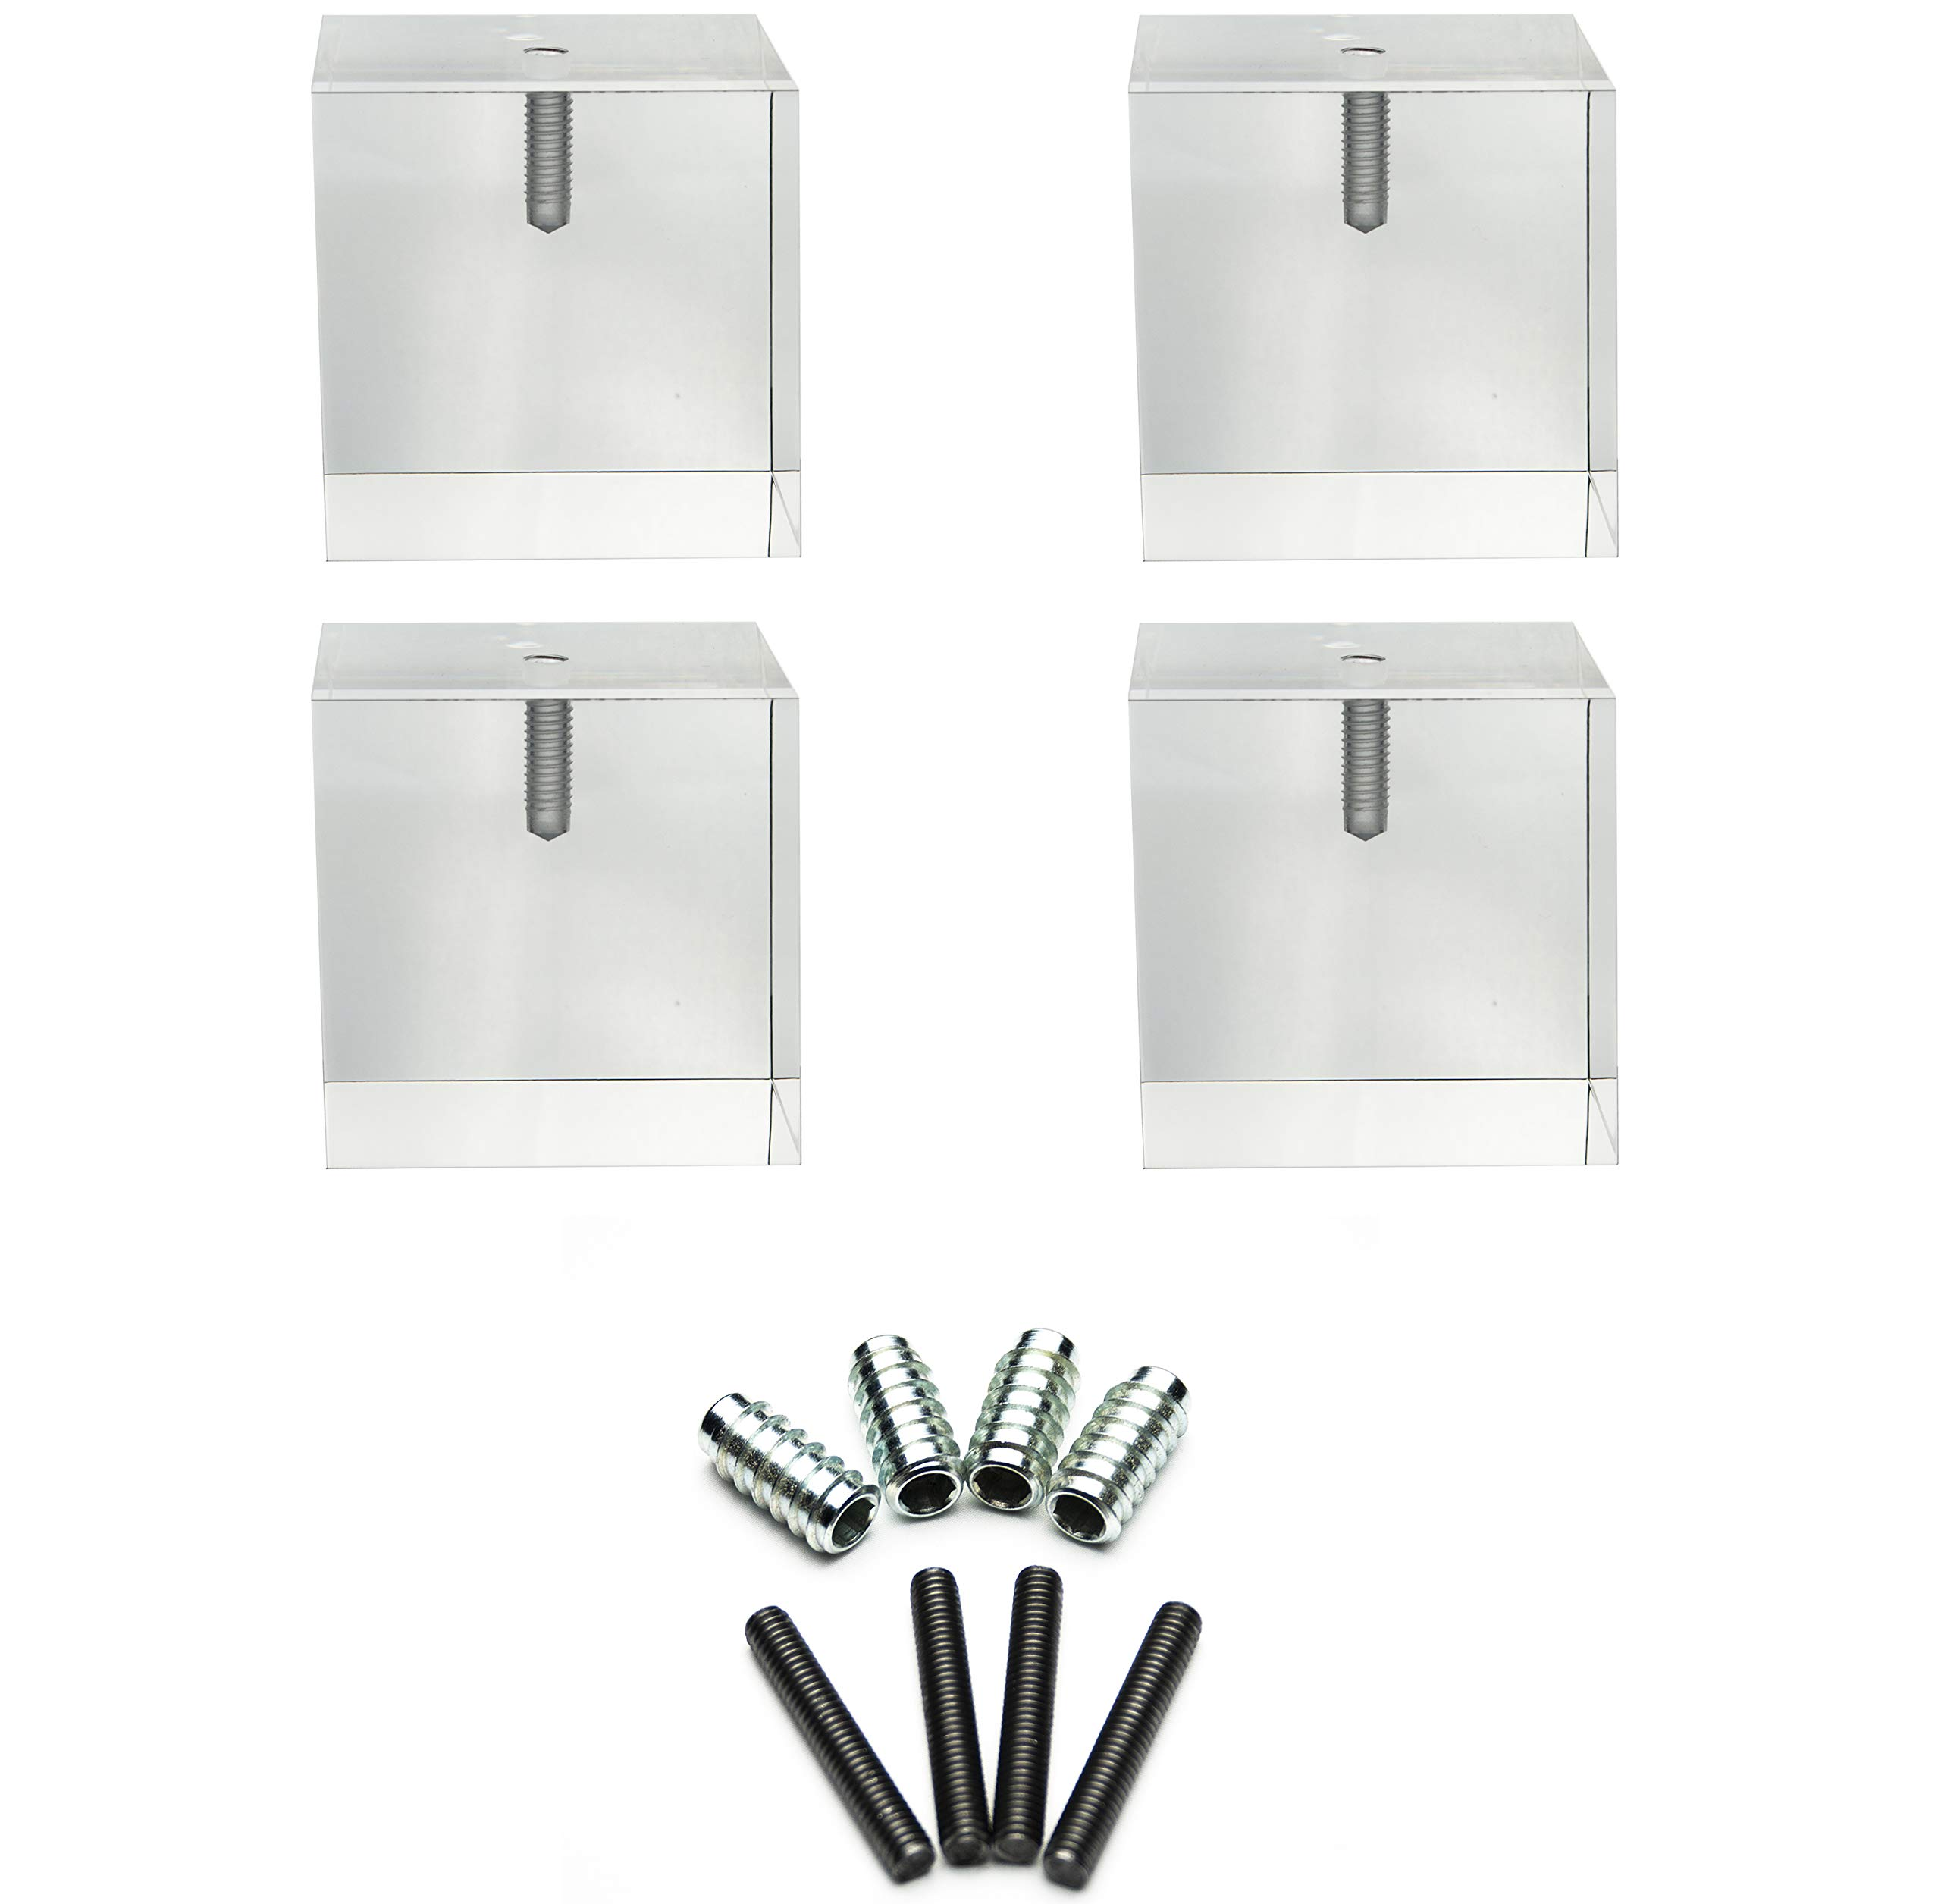 Acrylic Cube Furniture Feet- 3''H x 3''W- Set of 4- Perfect for Sofas, Chairs, Cabinets, Dressers, Sofas, and More!